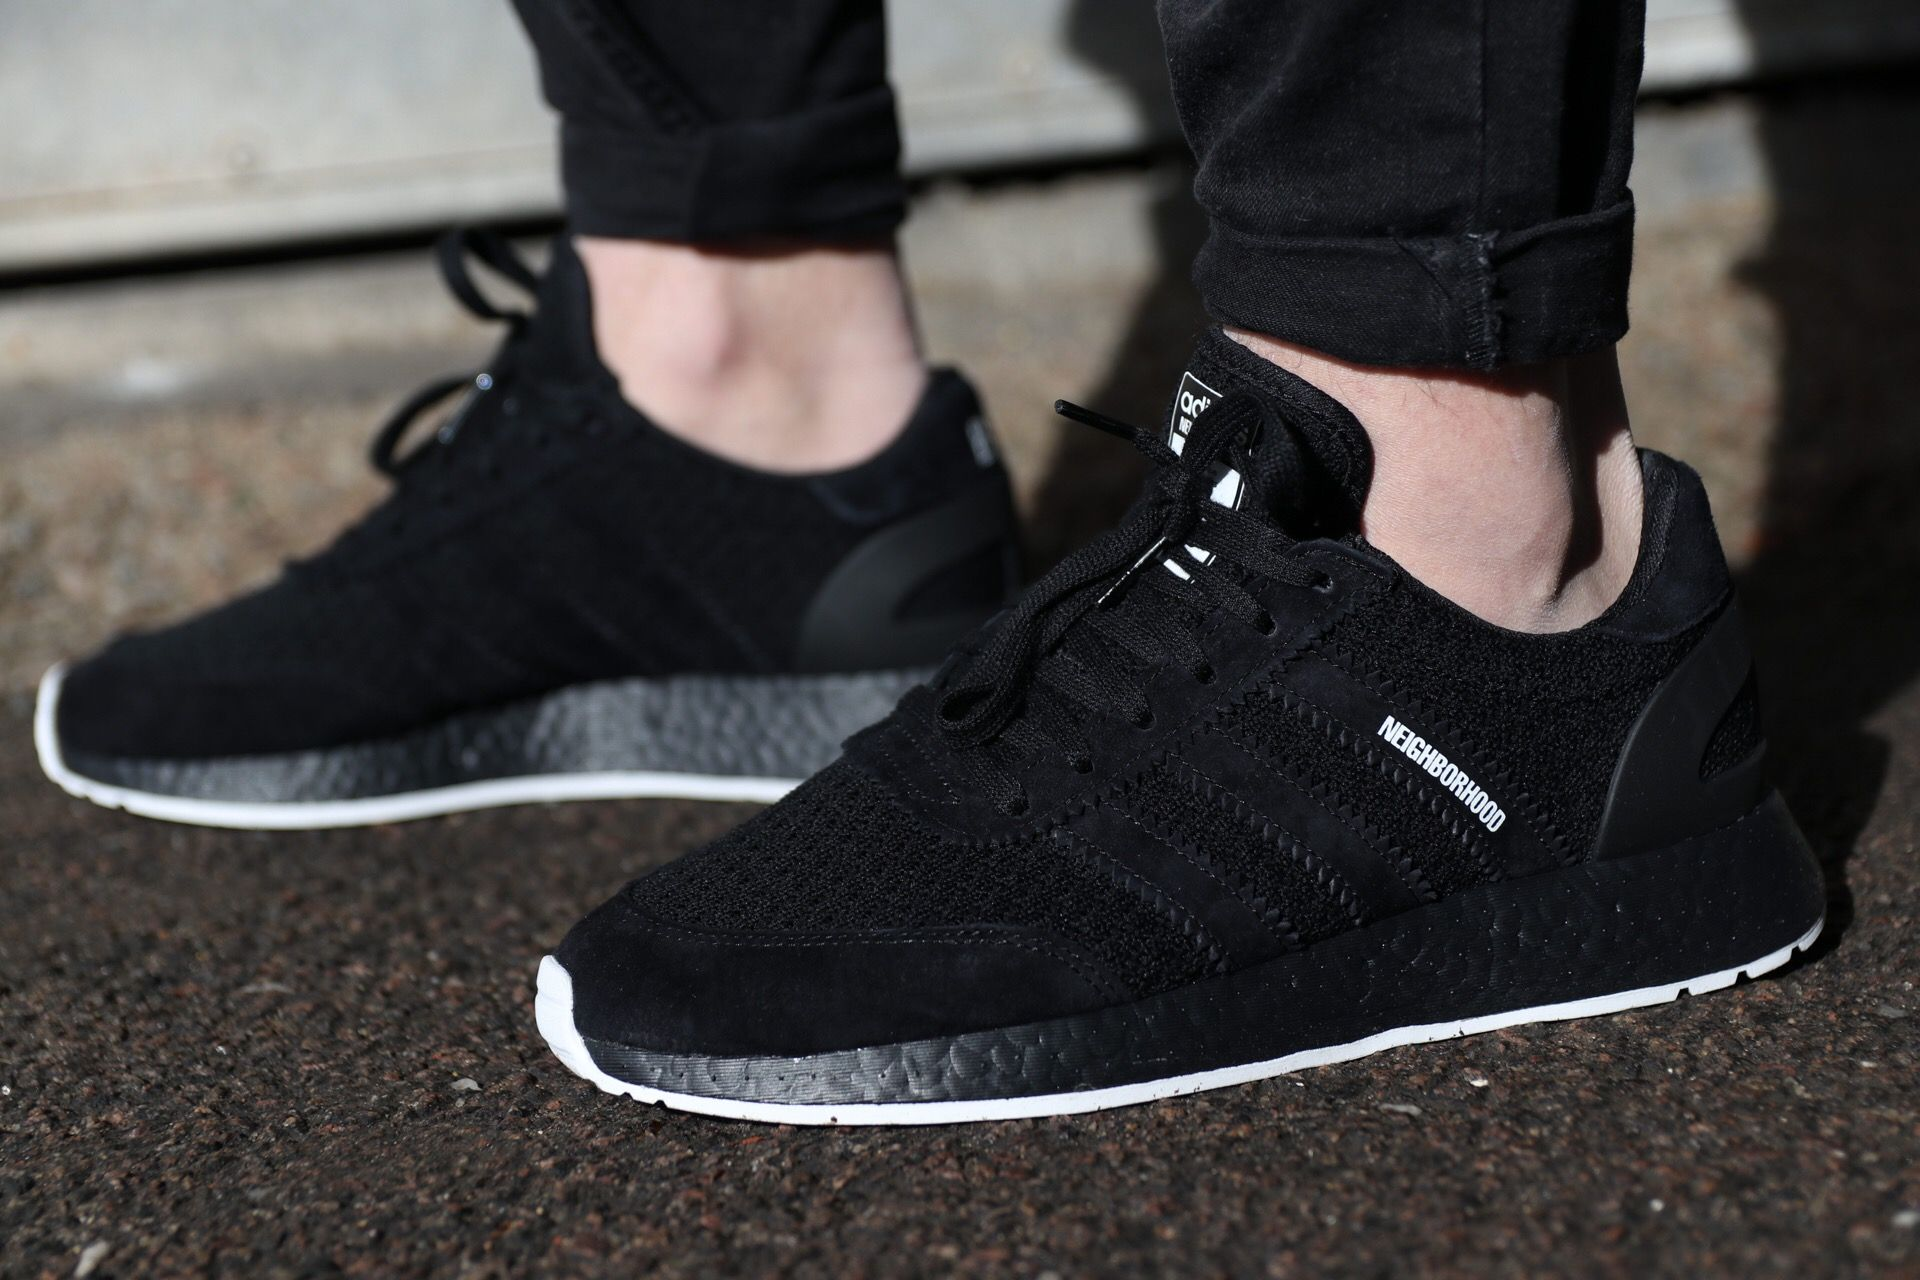 3c92942f4f521 Adidas x Neighbourhood I-5923 (Iniki) runners on-feet.